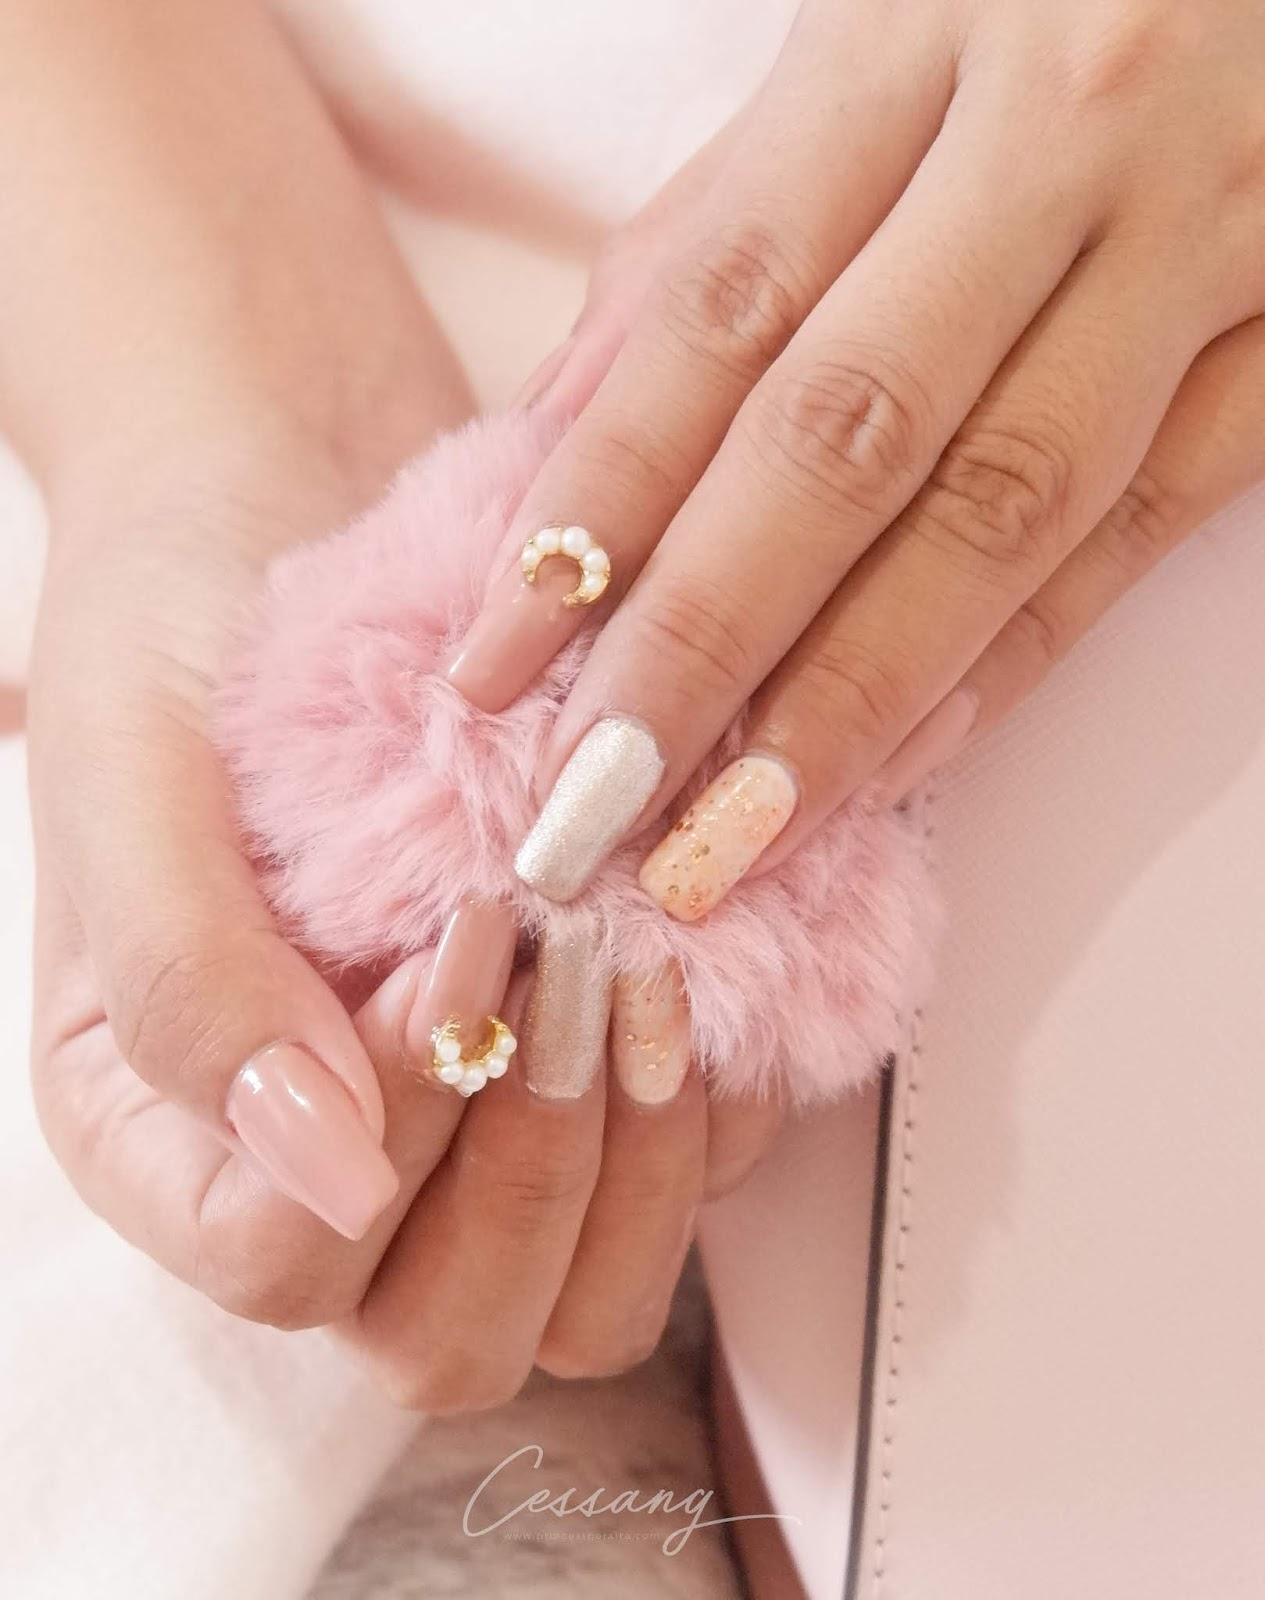 CESSANG NAIL ART COLLECTION - MOON GLITTER NUDE PINK GEL MANICURE